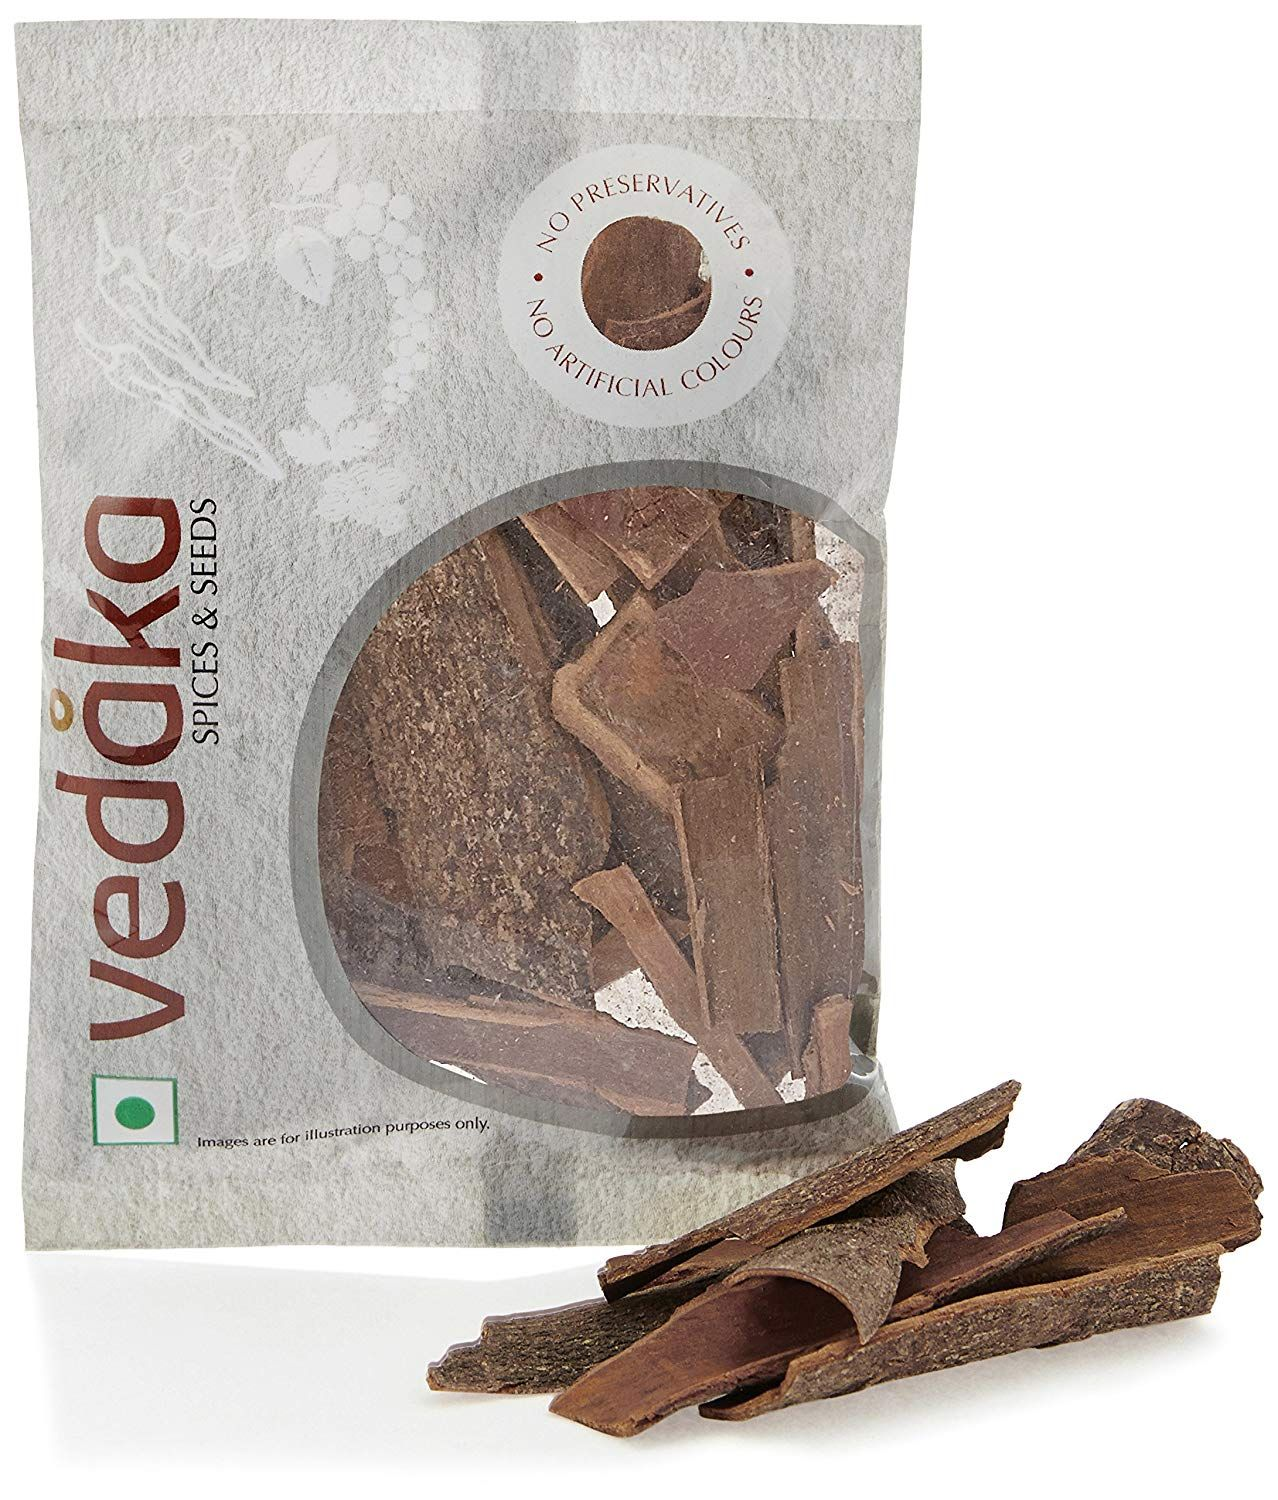 Flat 54% Off:- Amazon Brand - Vedaka Cinnamon (Dalchini), 50g